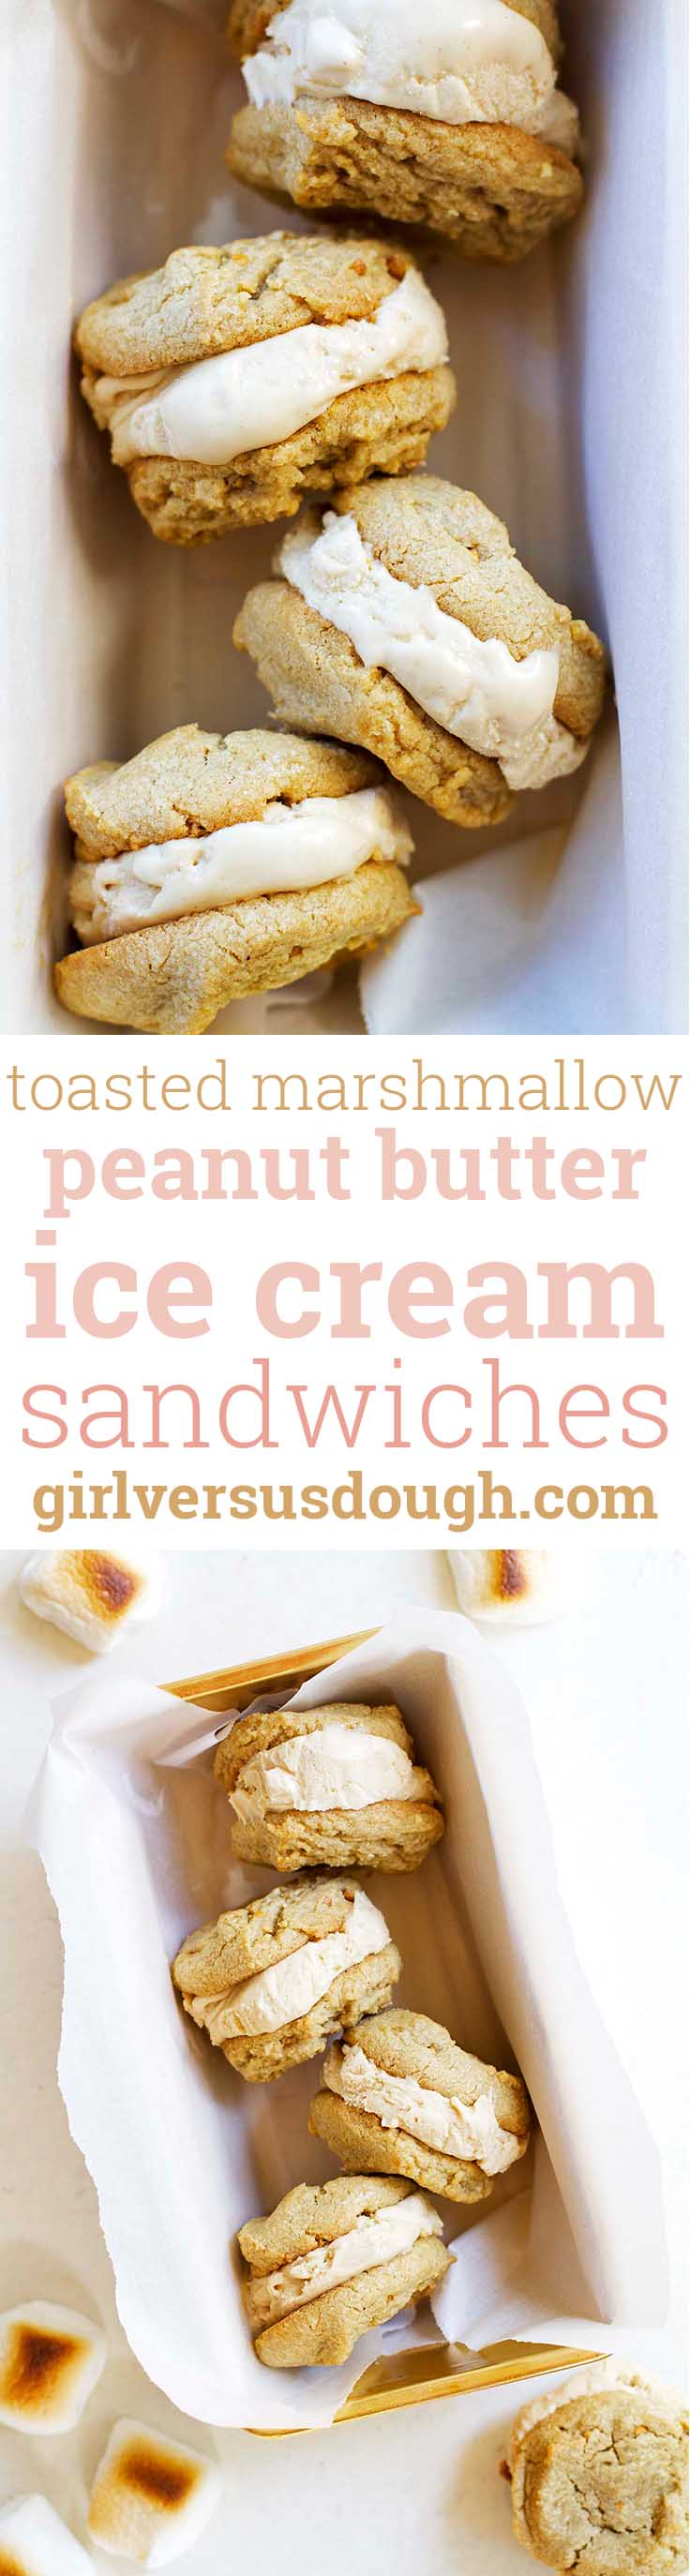 Toasted Marshmallow Peanut Butter Ice Cream Sandwiches -- Homemade toasted marshmallow peanut butter ice cream and soft peanut butter cookies sandwiched into one delicious treat. girlversusdough.com @girlversusdough